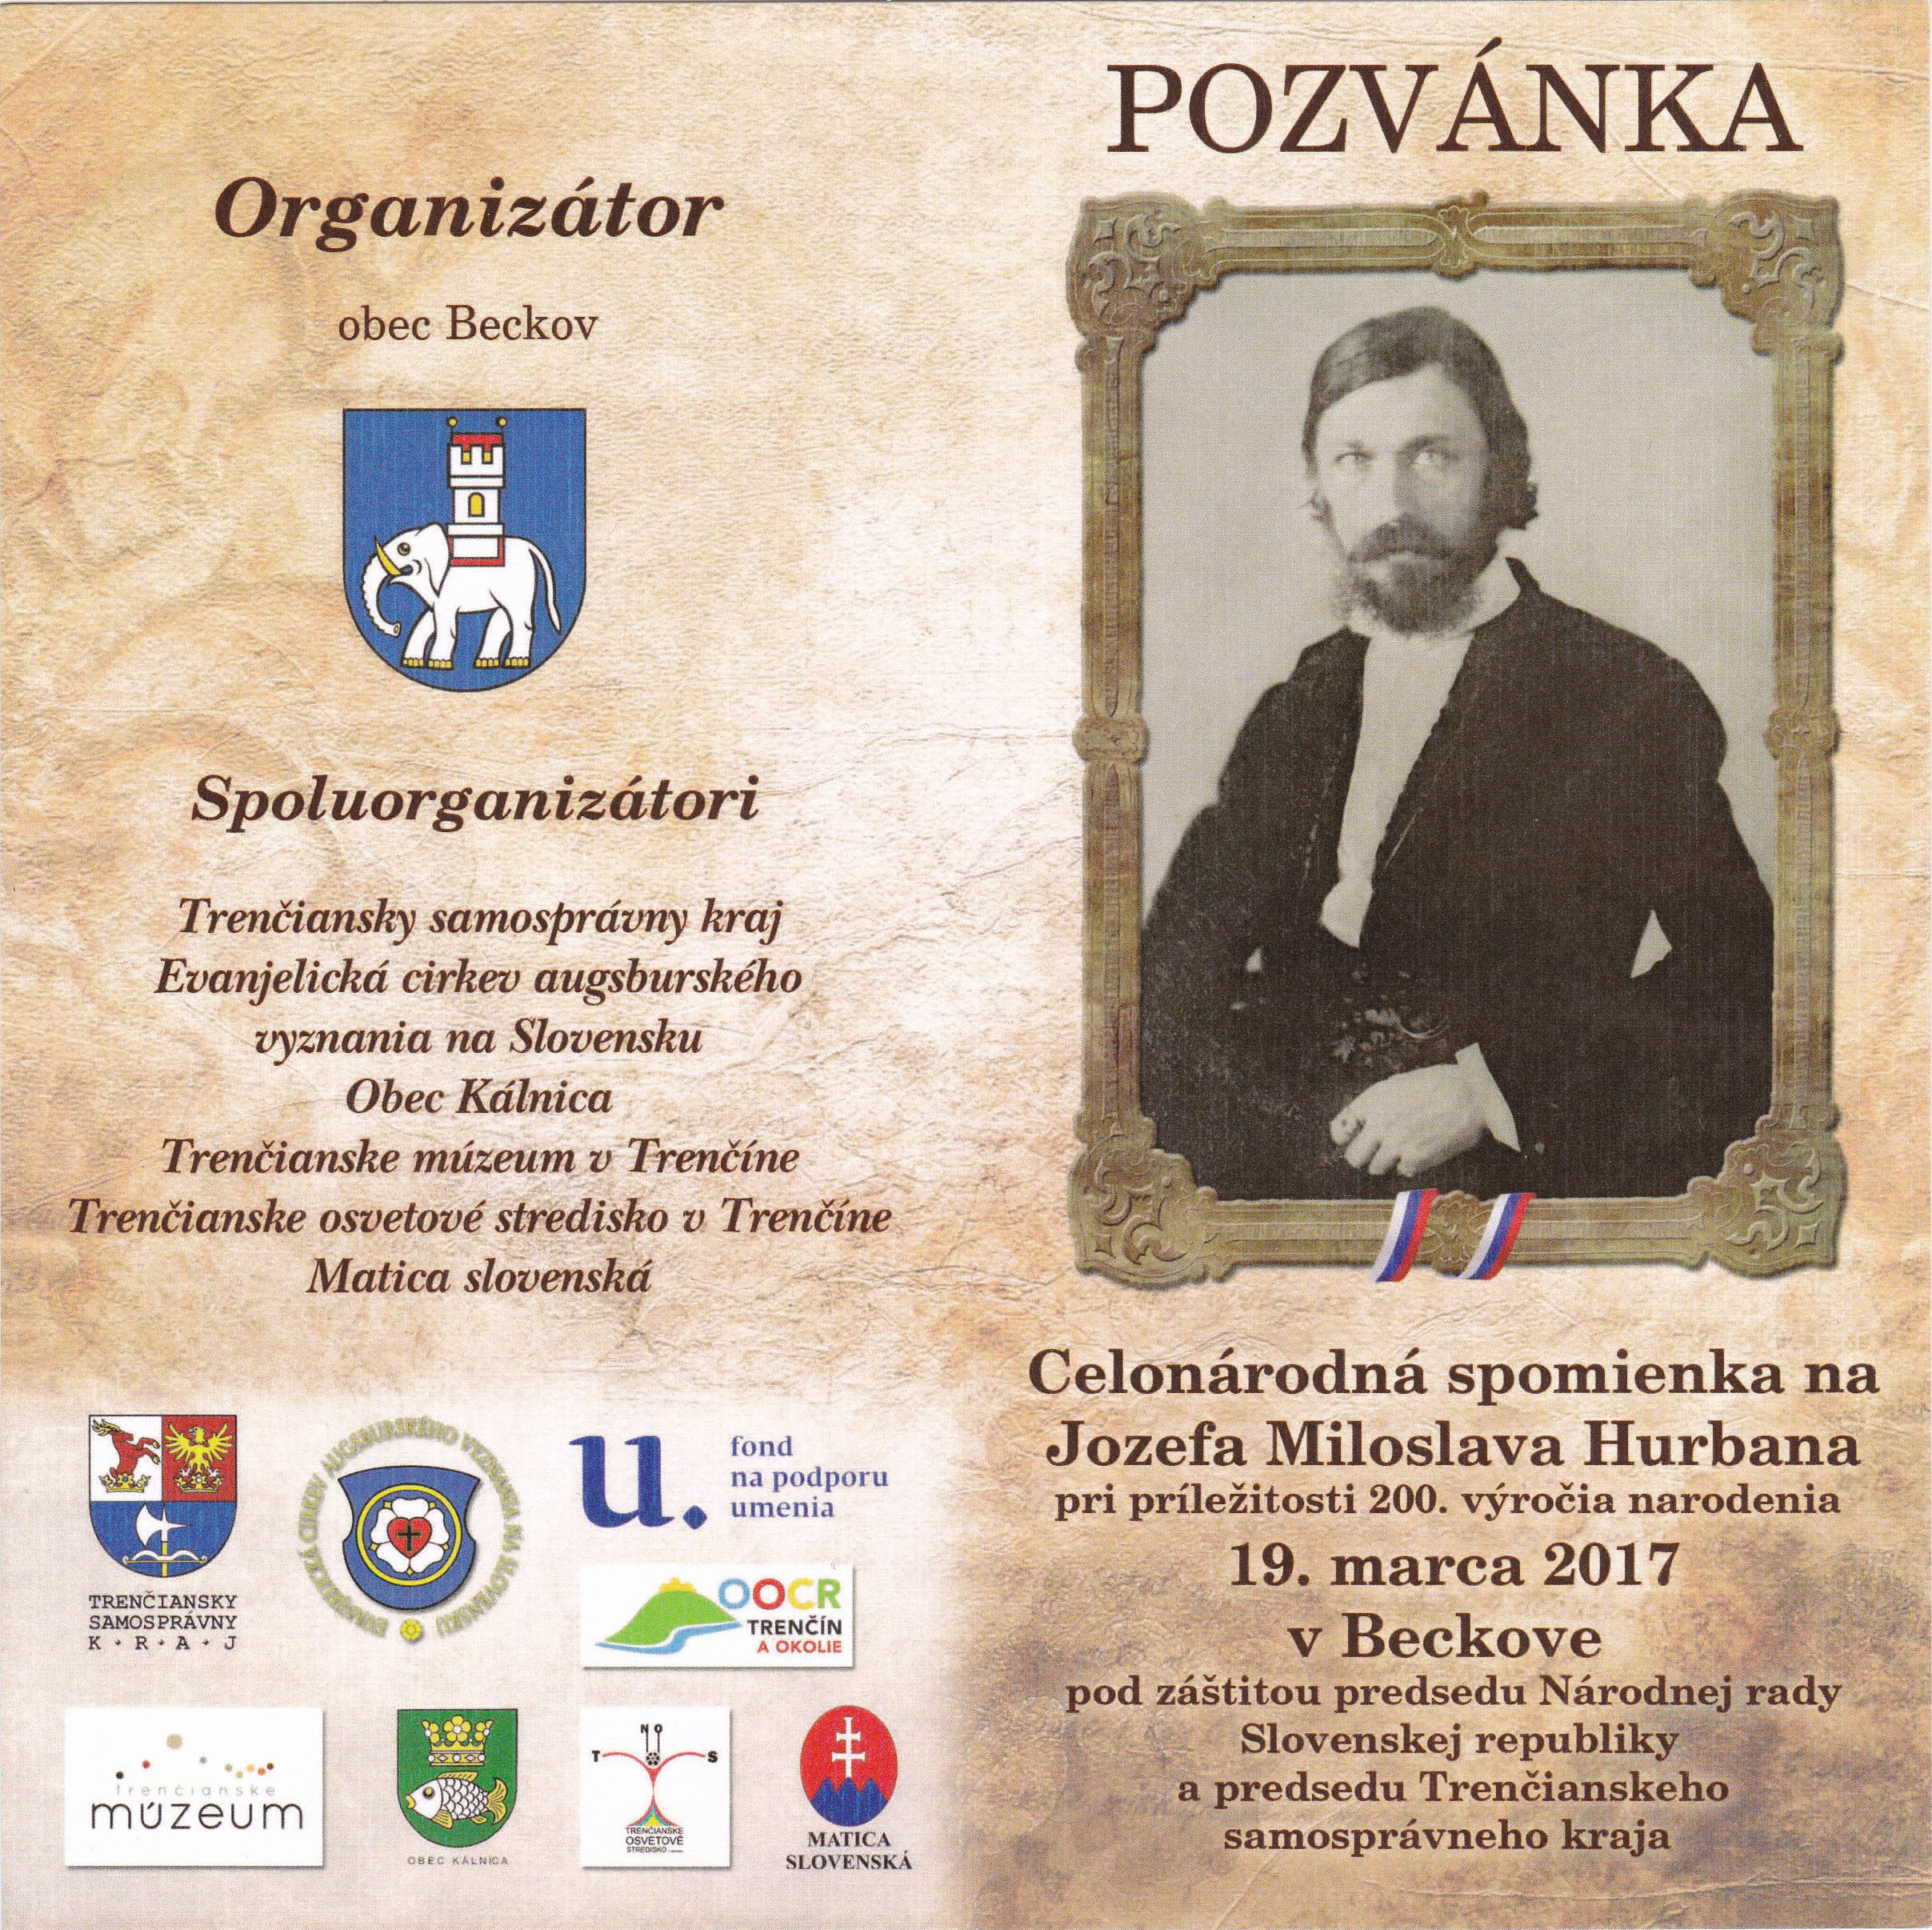 Stamp Inaugurations Ceremonial introduction of the postage stamp Personalities: Jozef Miloslav Hurban (1817 - 1888)